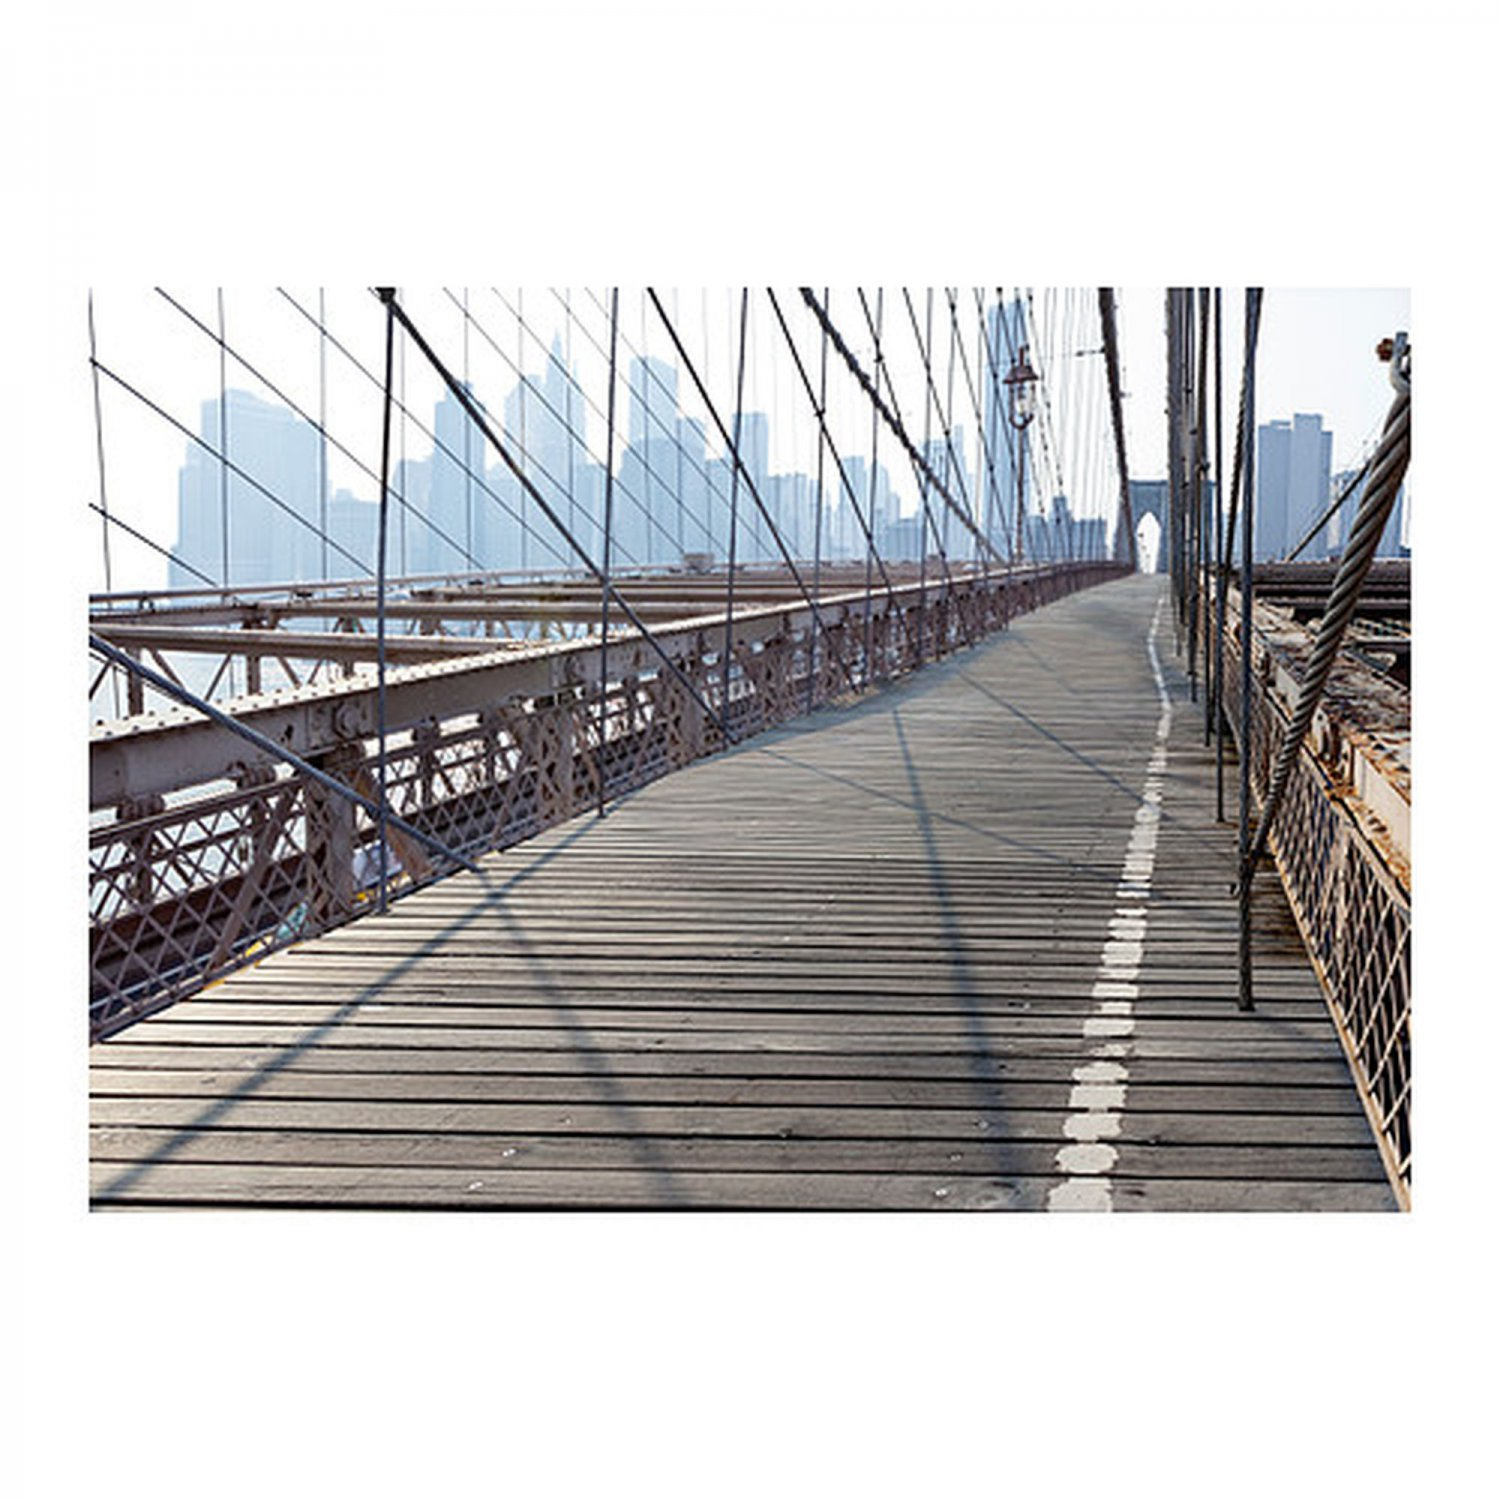 Ikea premiar brooklyn bridge canvas wall art print huge ny for Art and craft store in brooklyn ny